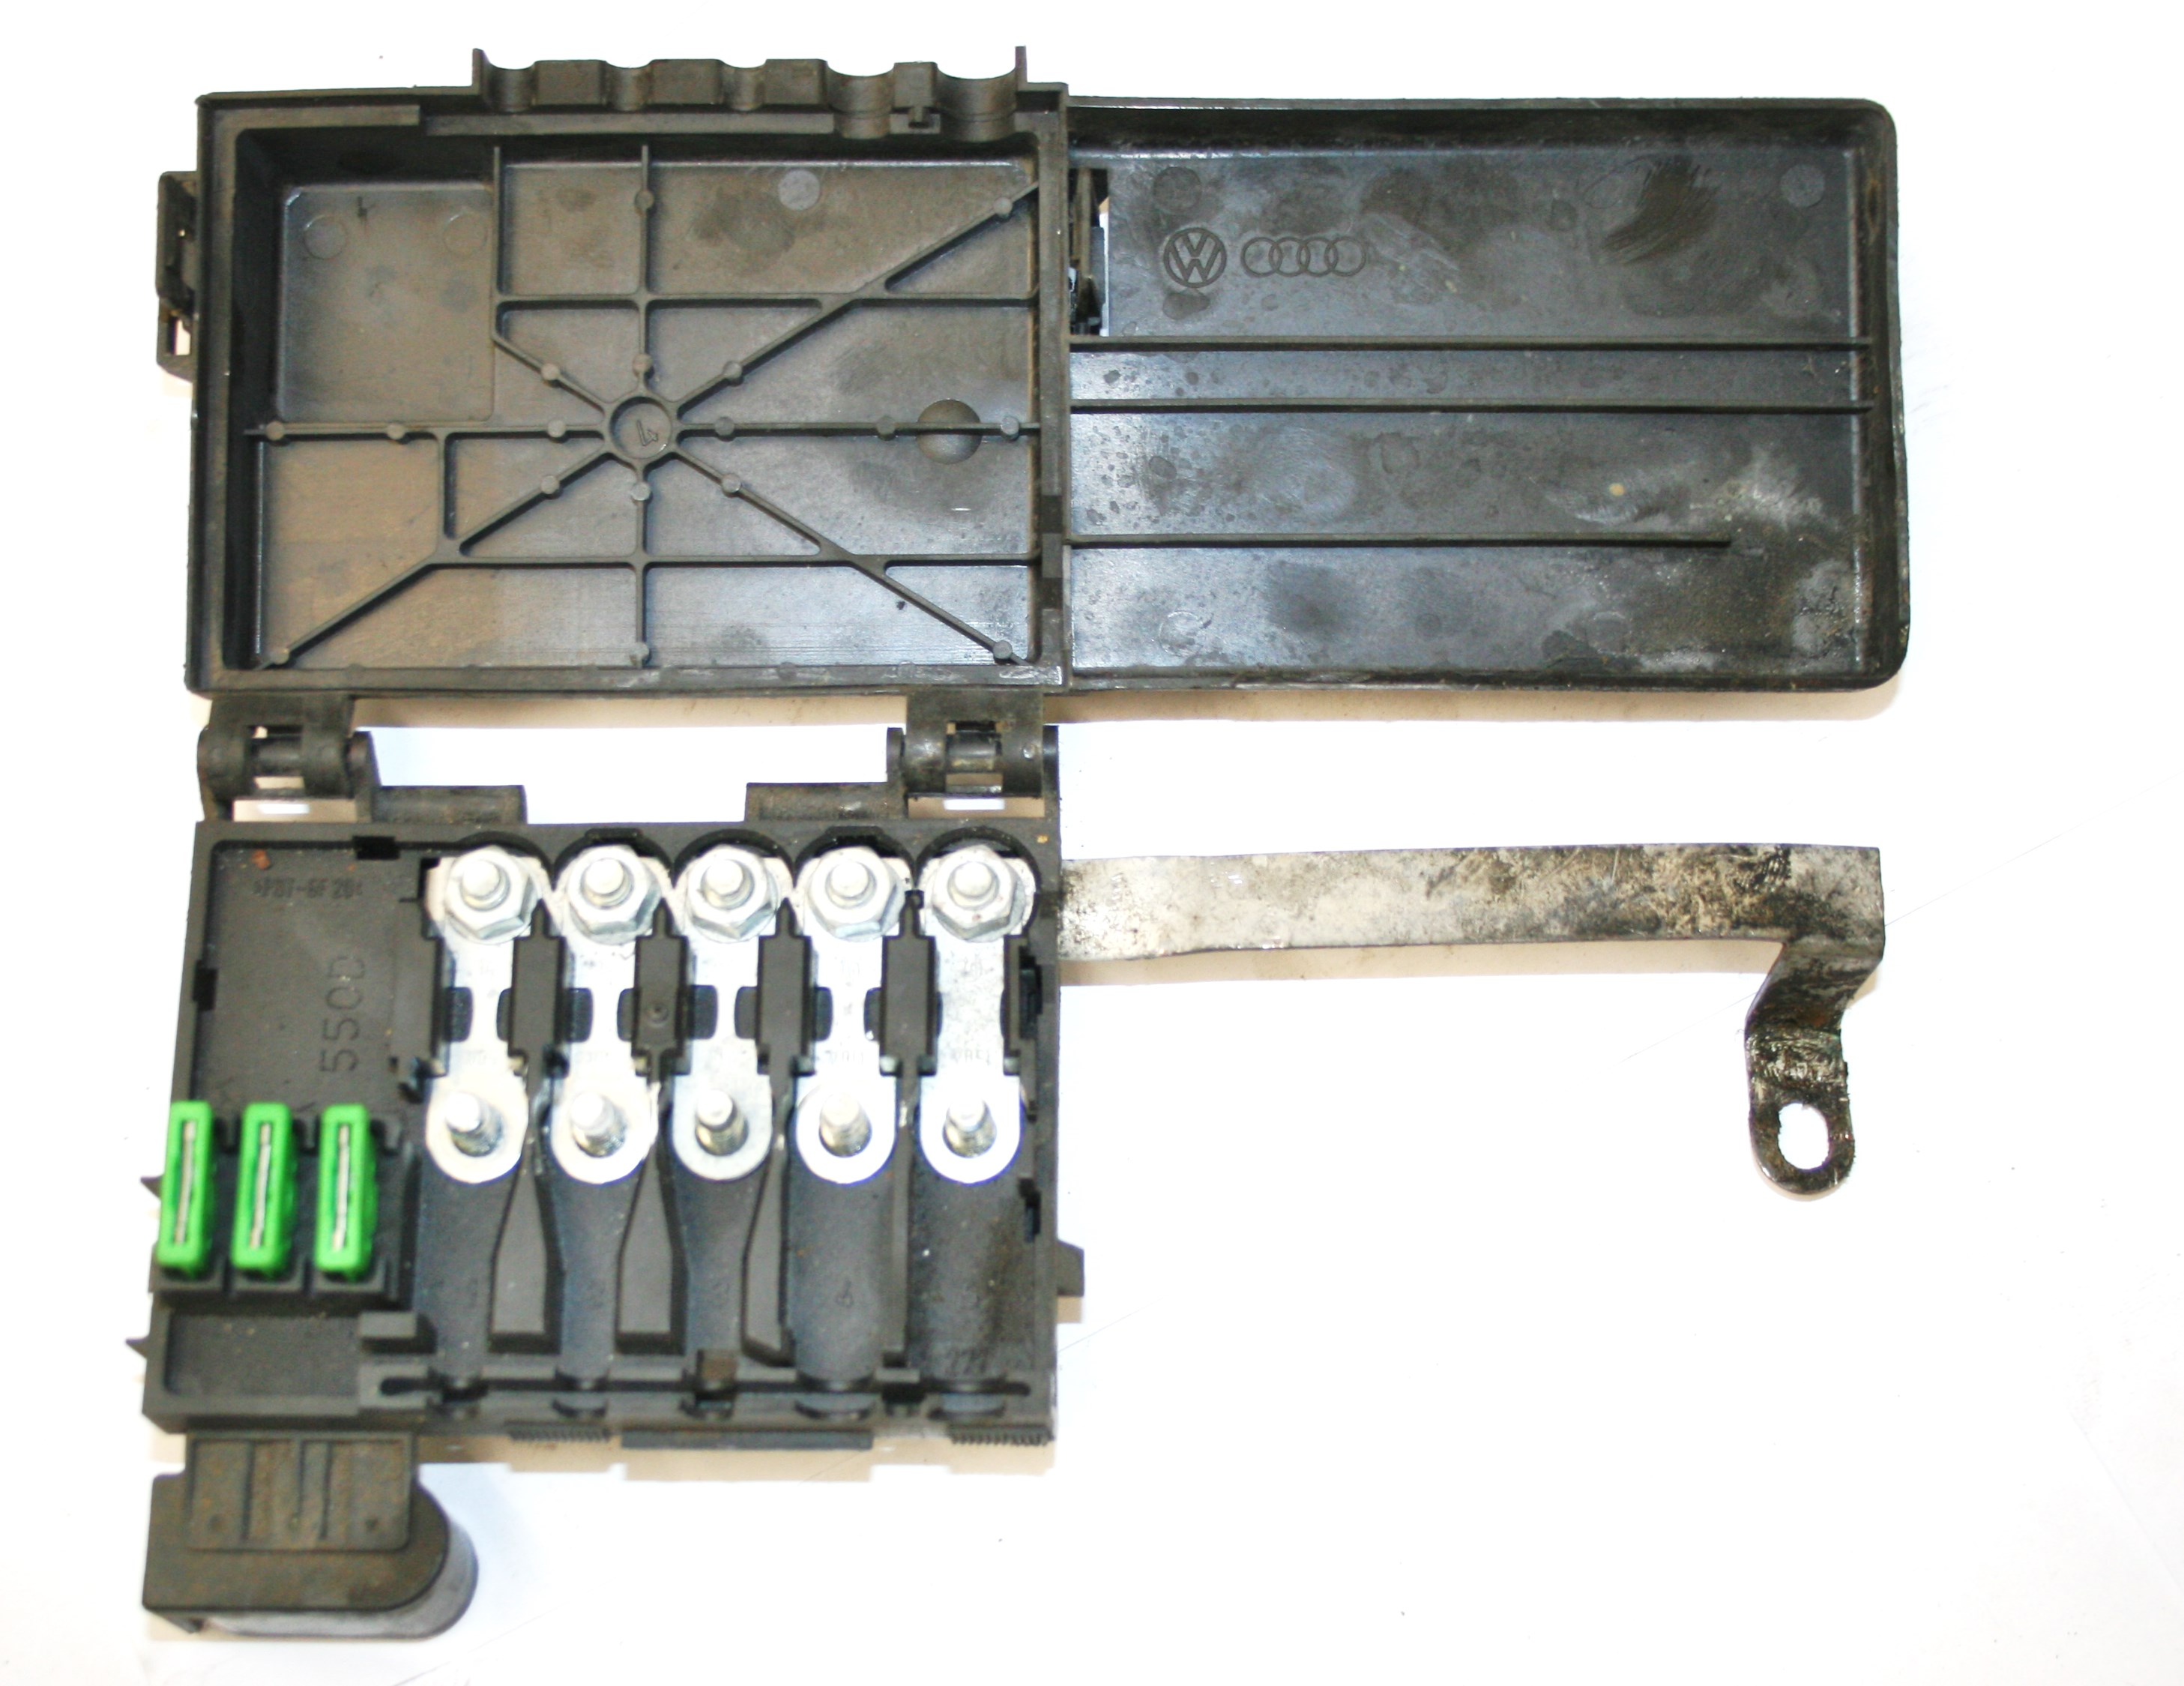 VW Golf VW Golf MK4 FUSE BOX ON TOP OF BATTERY 5 WIRE TYPE 1J0 937 550  D£20.00